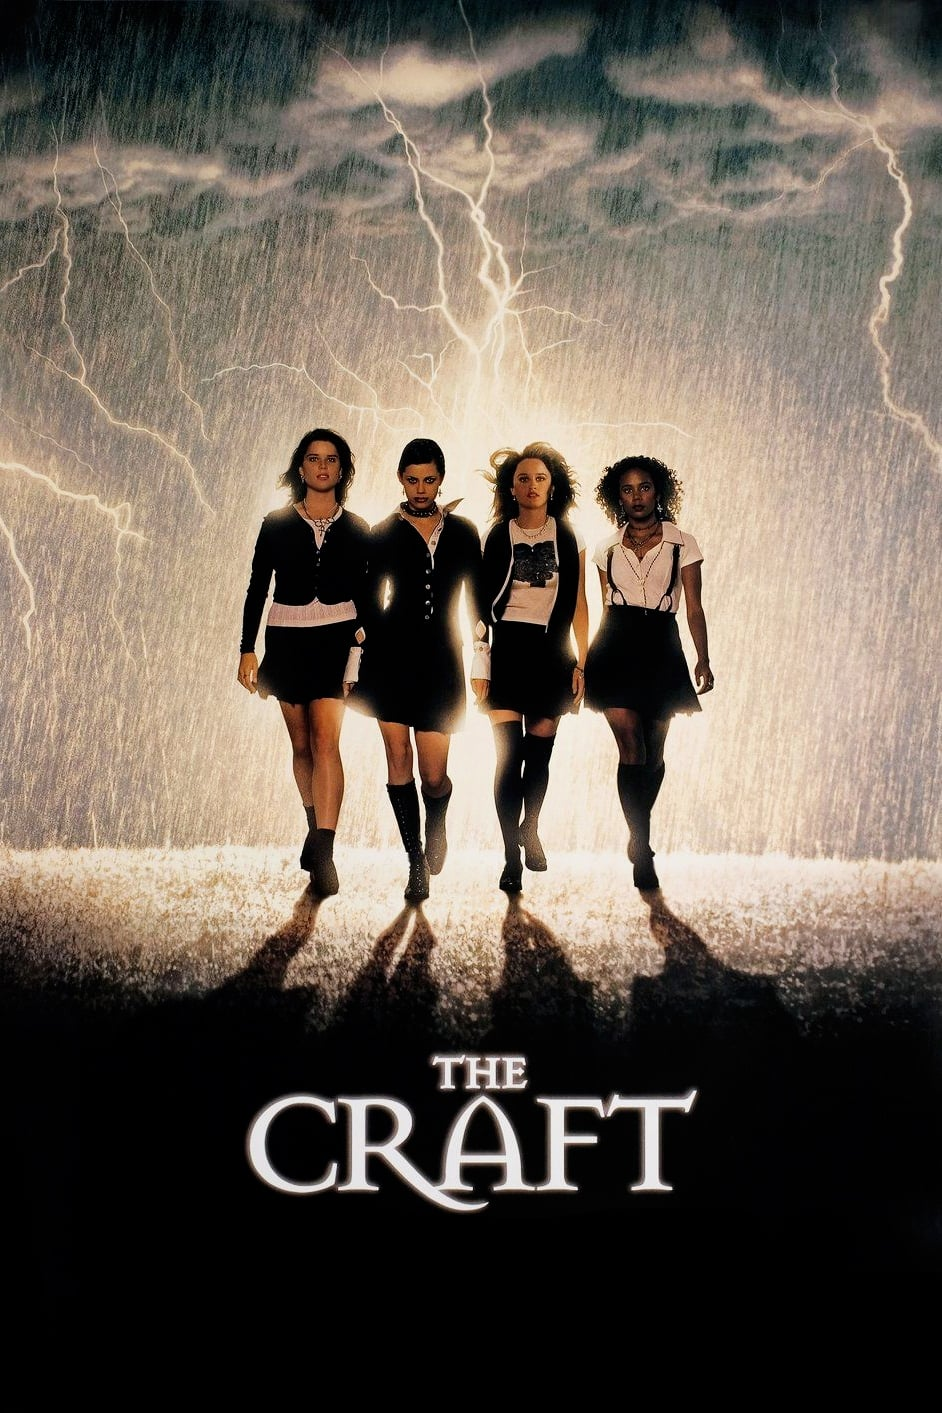 Poster for The Craft